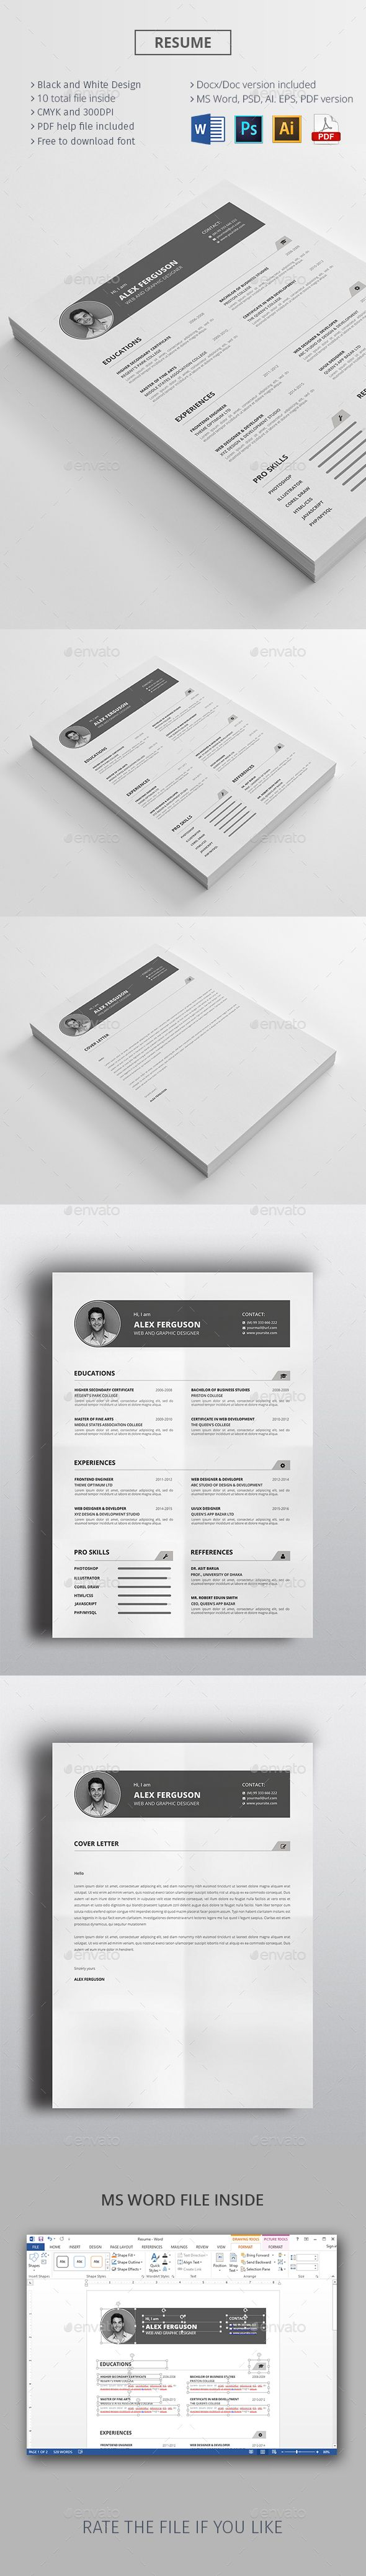 this premium resume cv belongs ms word  ai  eps  psd  pdf